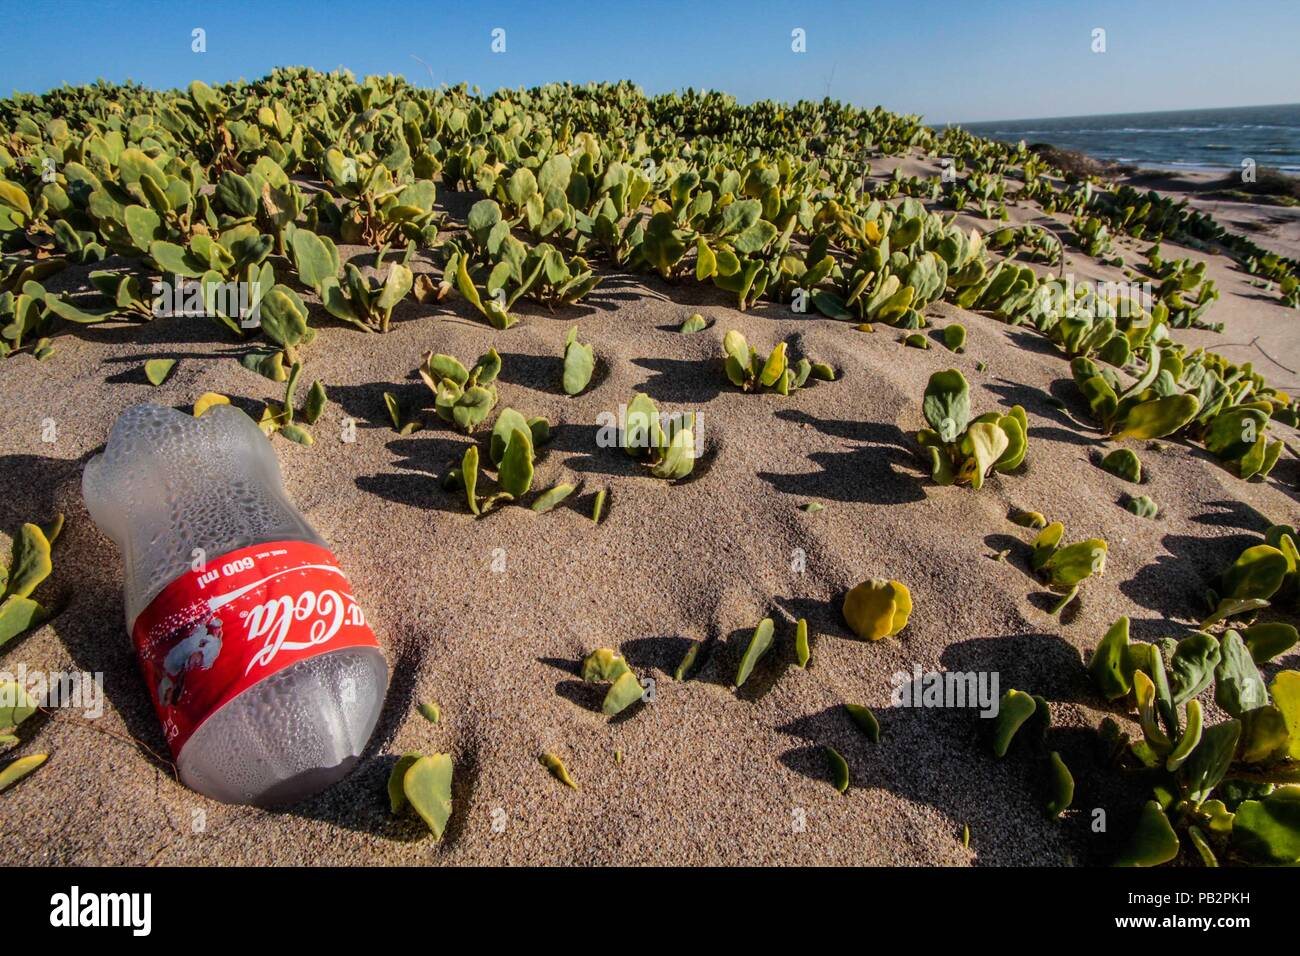 Empty plastic bottle of Coca Cola brand gas, cause of pollution and environmental impact. Sand dunes at Imalaya Beach in the vicinity of Kino Bay. - Stock Image